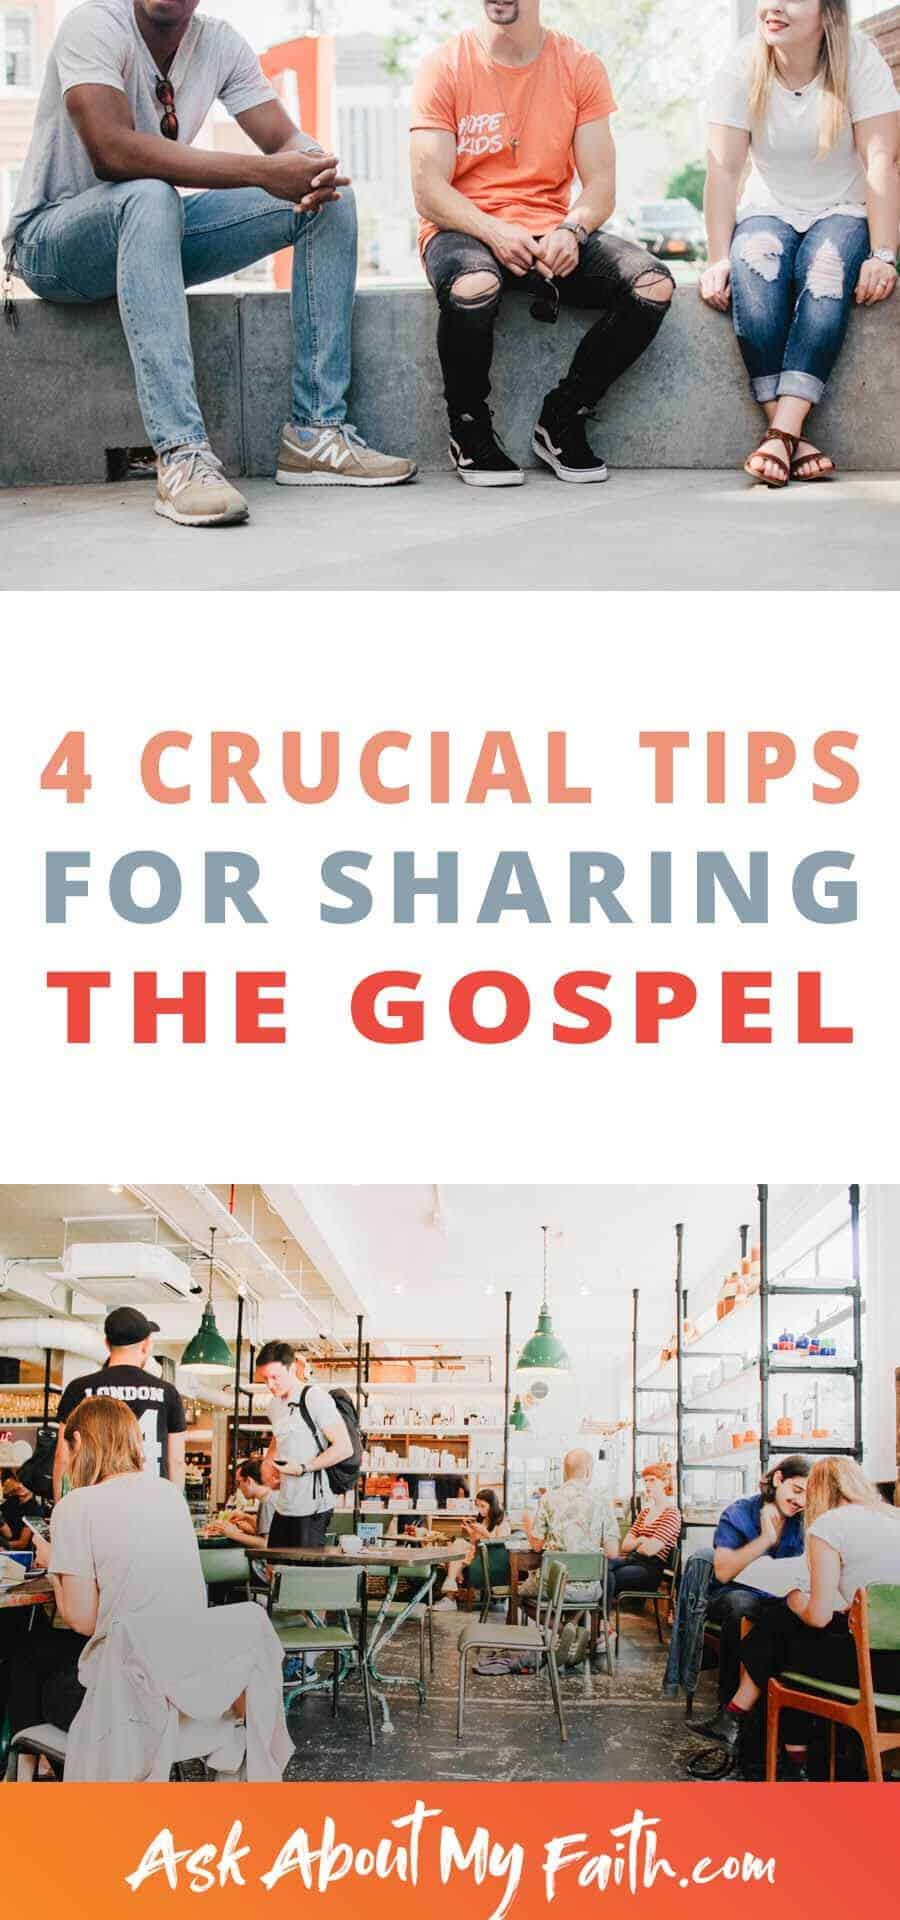 4 Crucial Tips for Sharing the Gospel | 3 Things to Look for (and 1 to avoid) | Evangelism Tips and Resources | Christian Faith